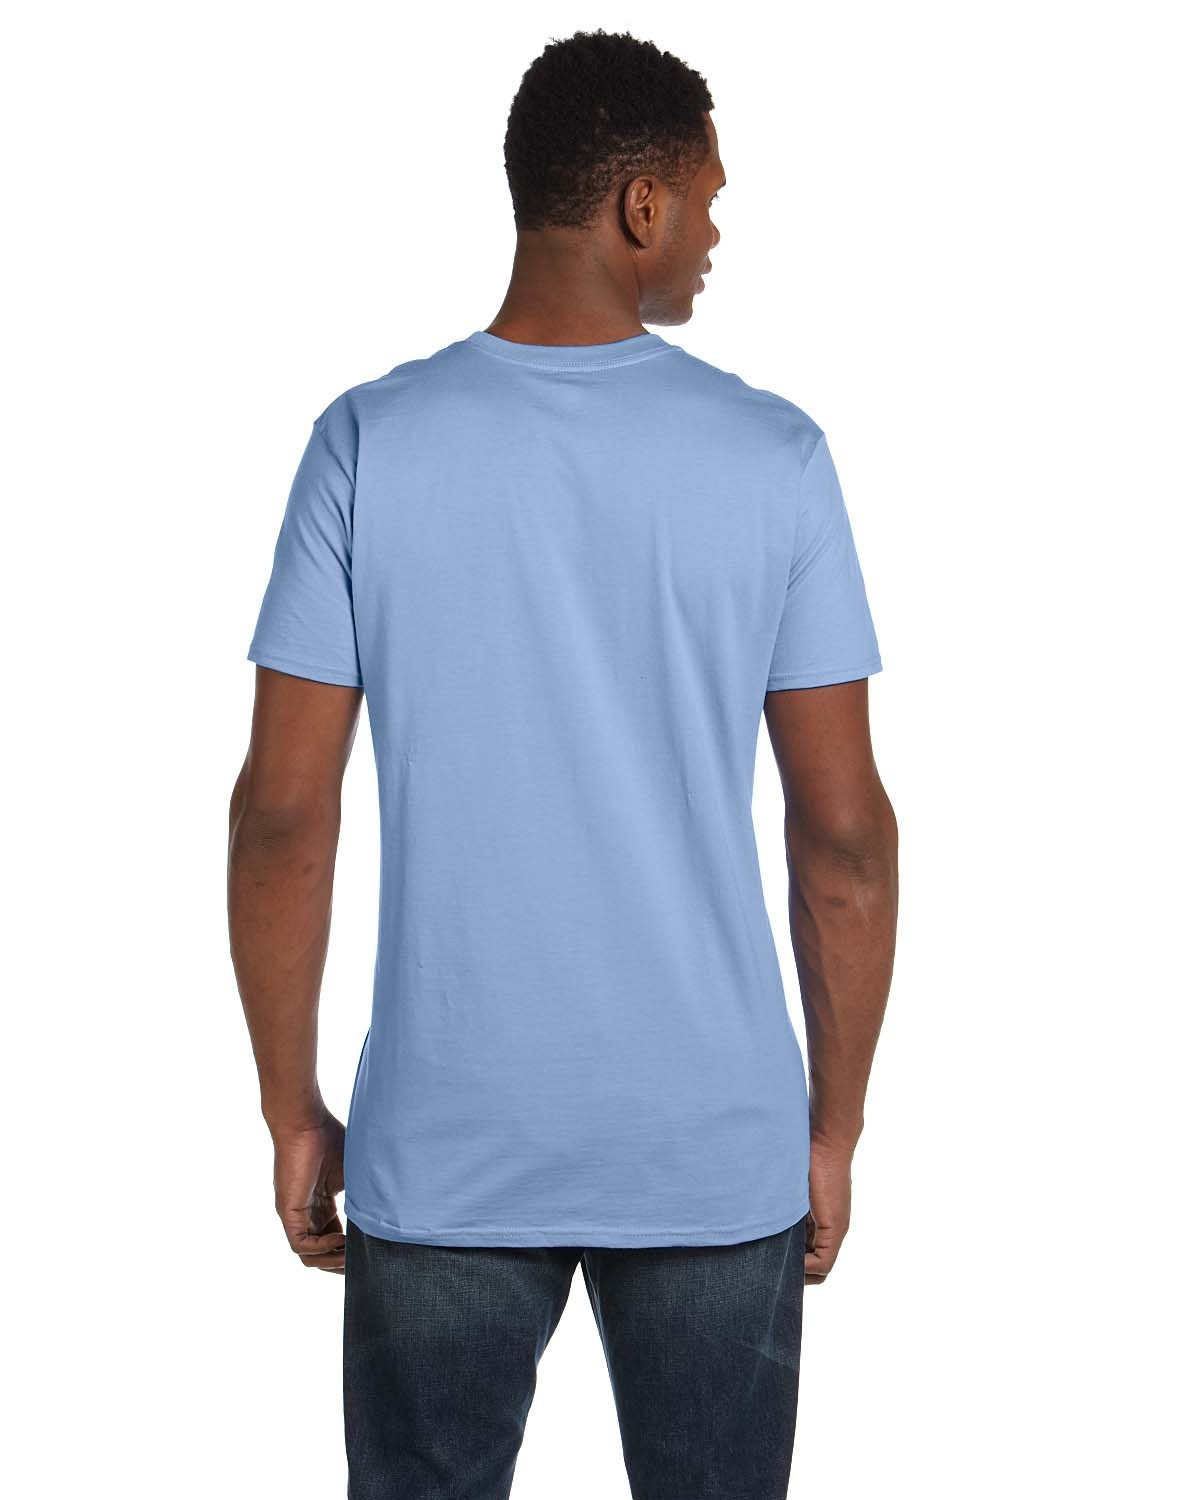 4980 Hanes LIGHT BLUE